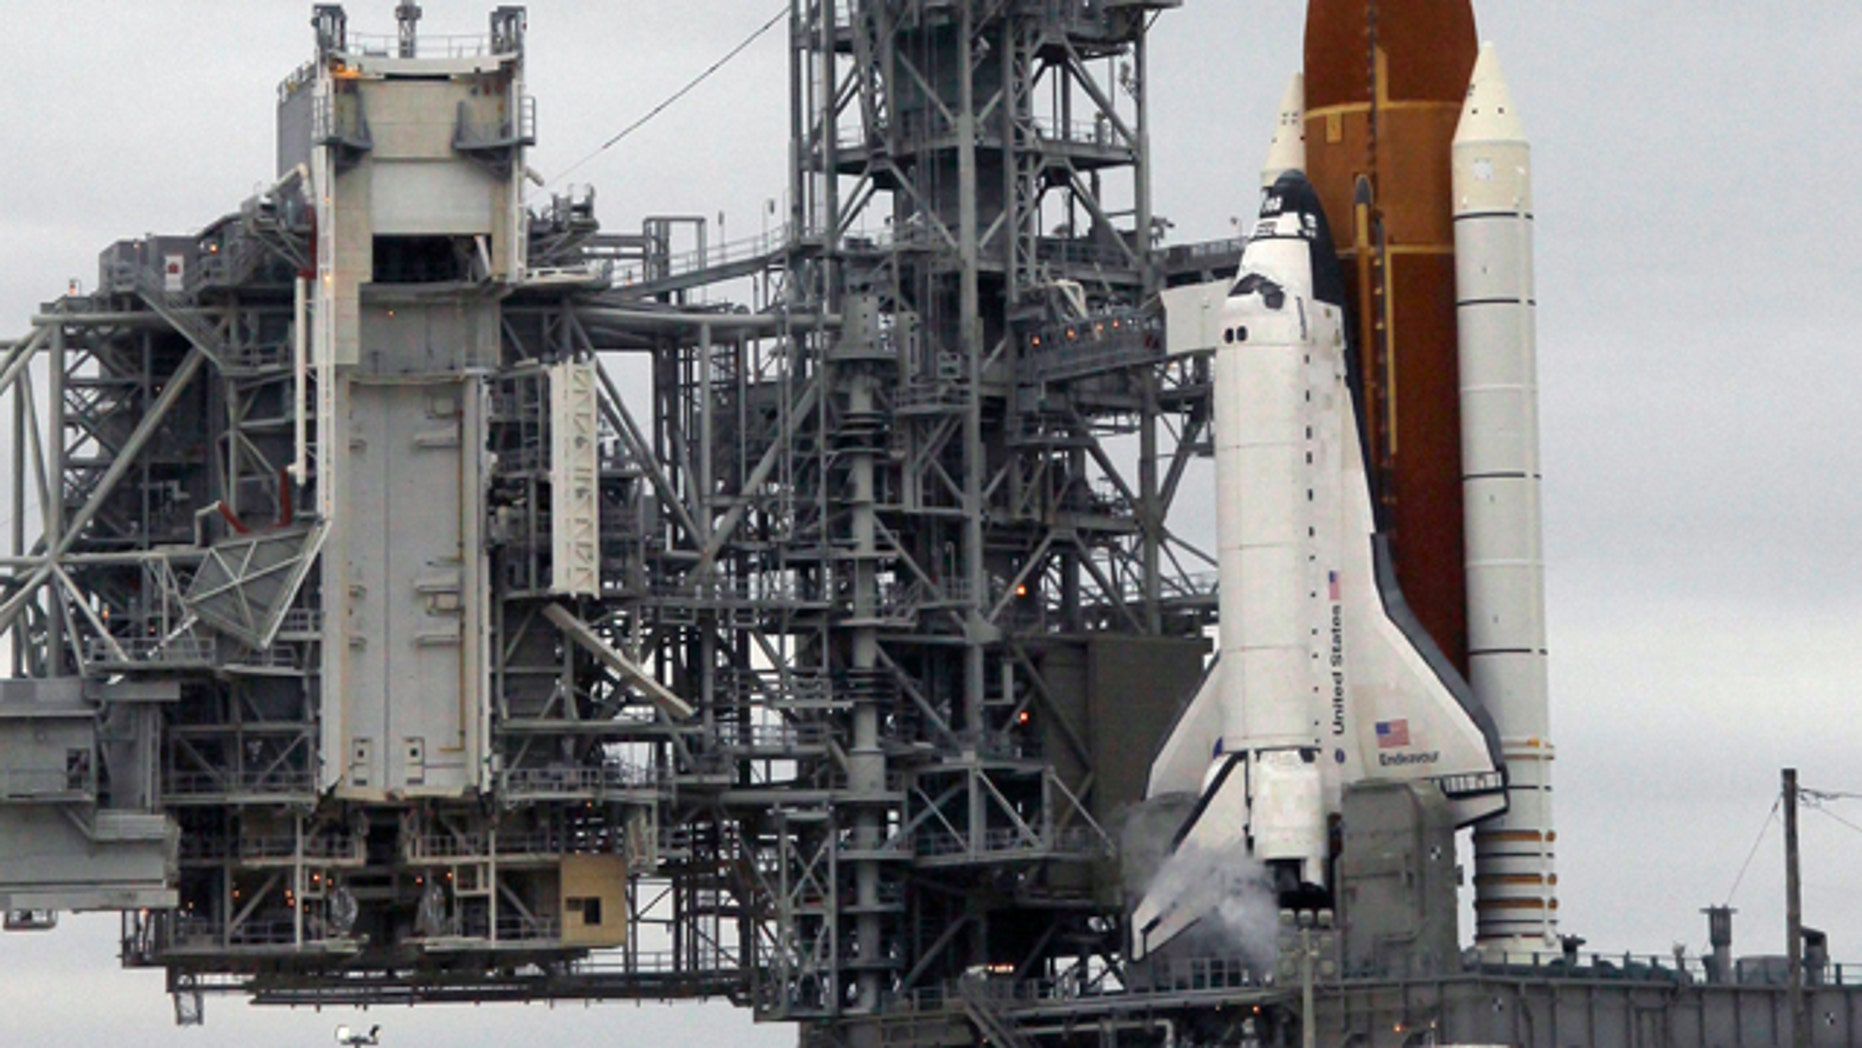 The space shuttle Endeavour sits on Launch Pad 39-A during fueling at Kennedy Space Center in Cape Canaveral, Fla., Friday, April 29, 2011. Endeavour, on her final flight, is scheduled to lift off this afternoon on an 14-day mission to the international space station.